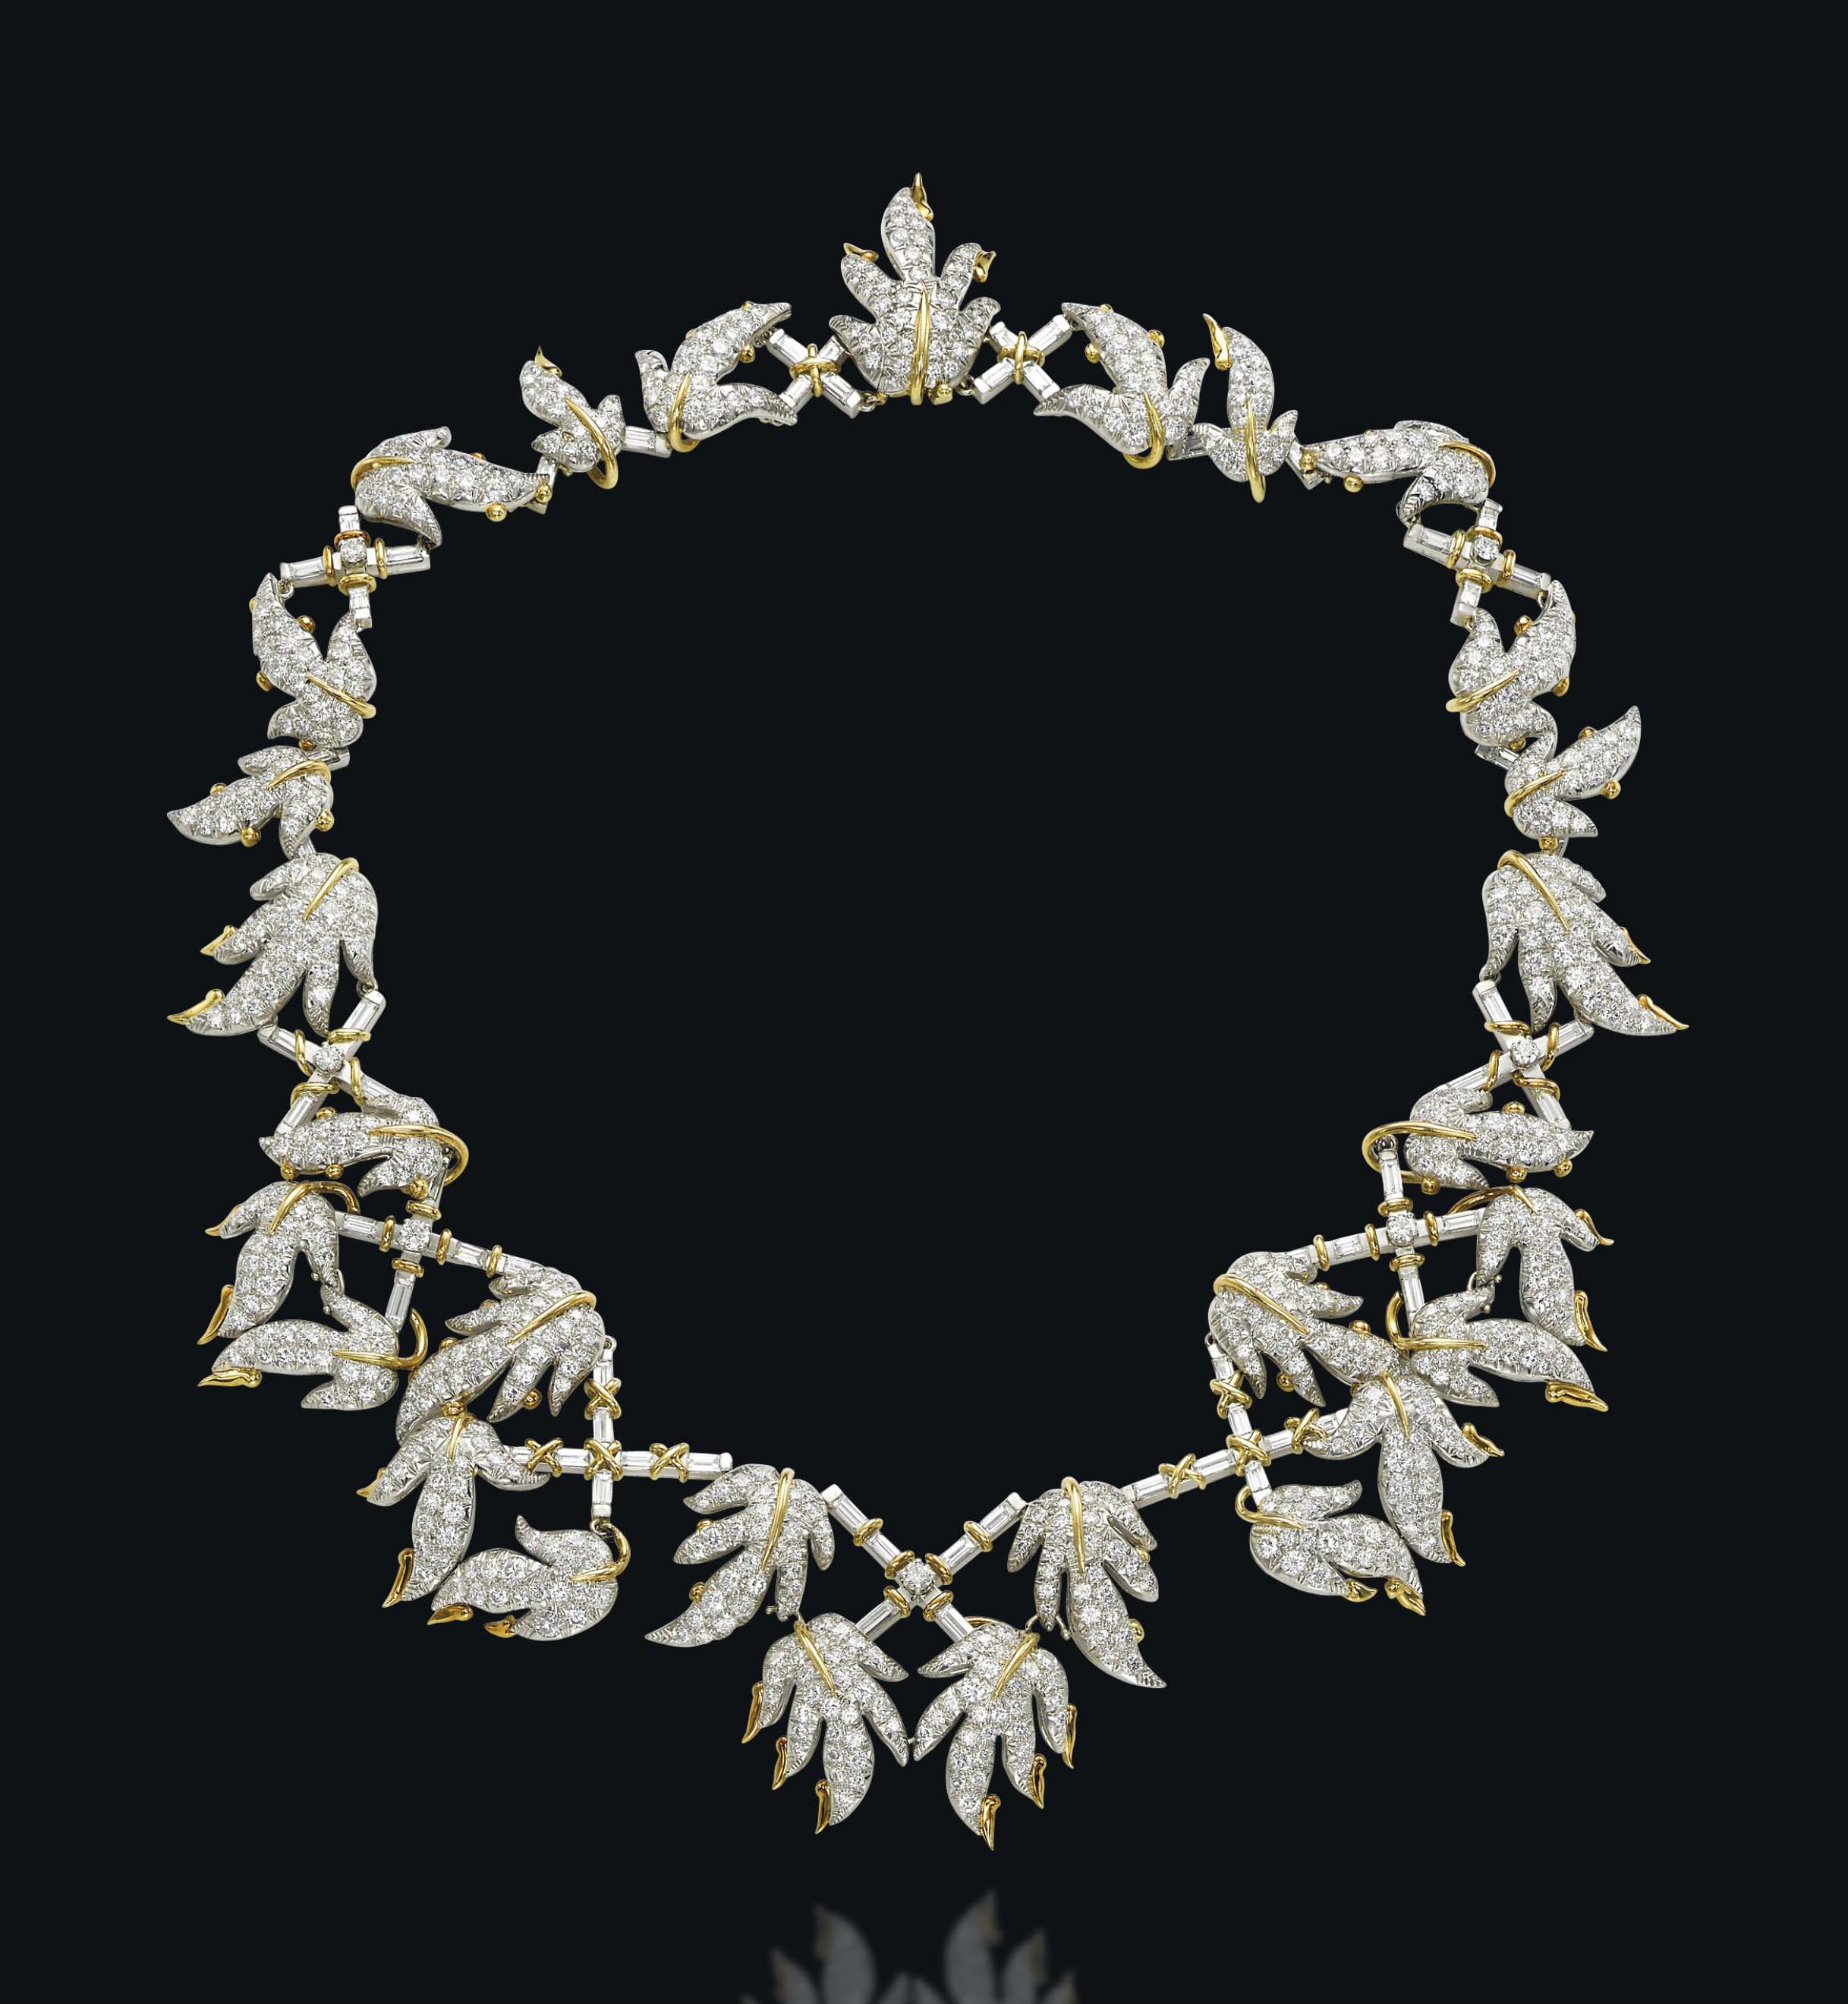 A DIAMOND NECKLACE, BY JEAN SCHLUMBERGER, TIFFANY & CO.